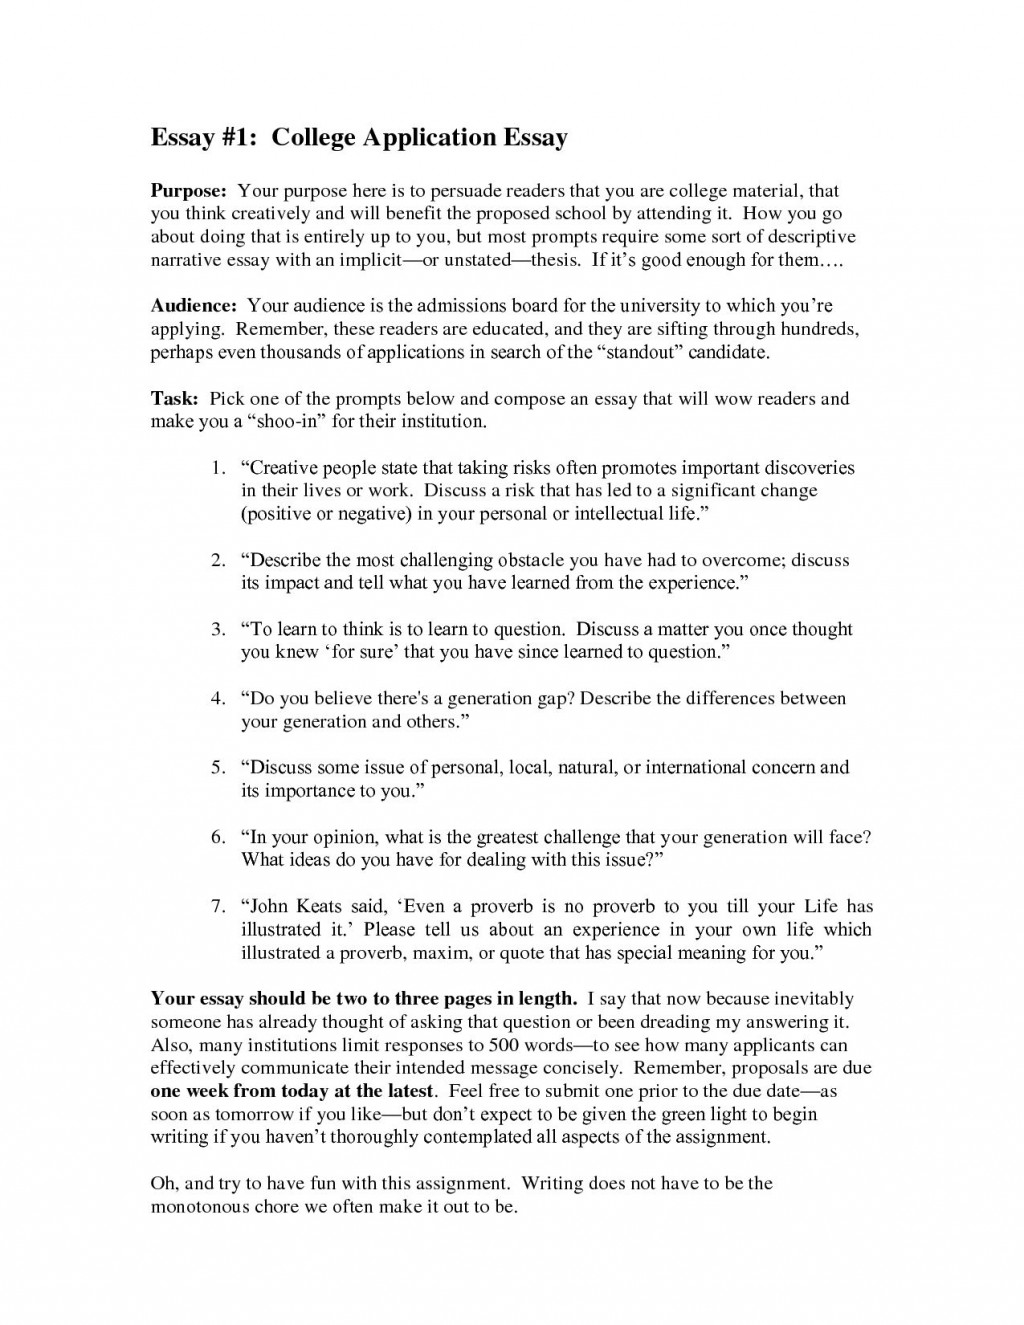 004 Argumentative Research Paper Topics For Fearsome Psychology Large